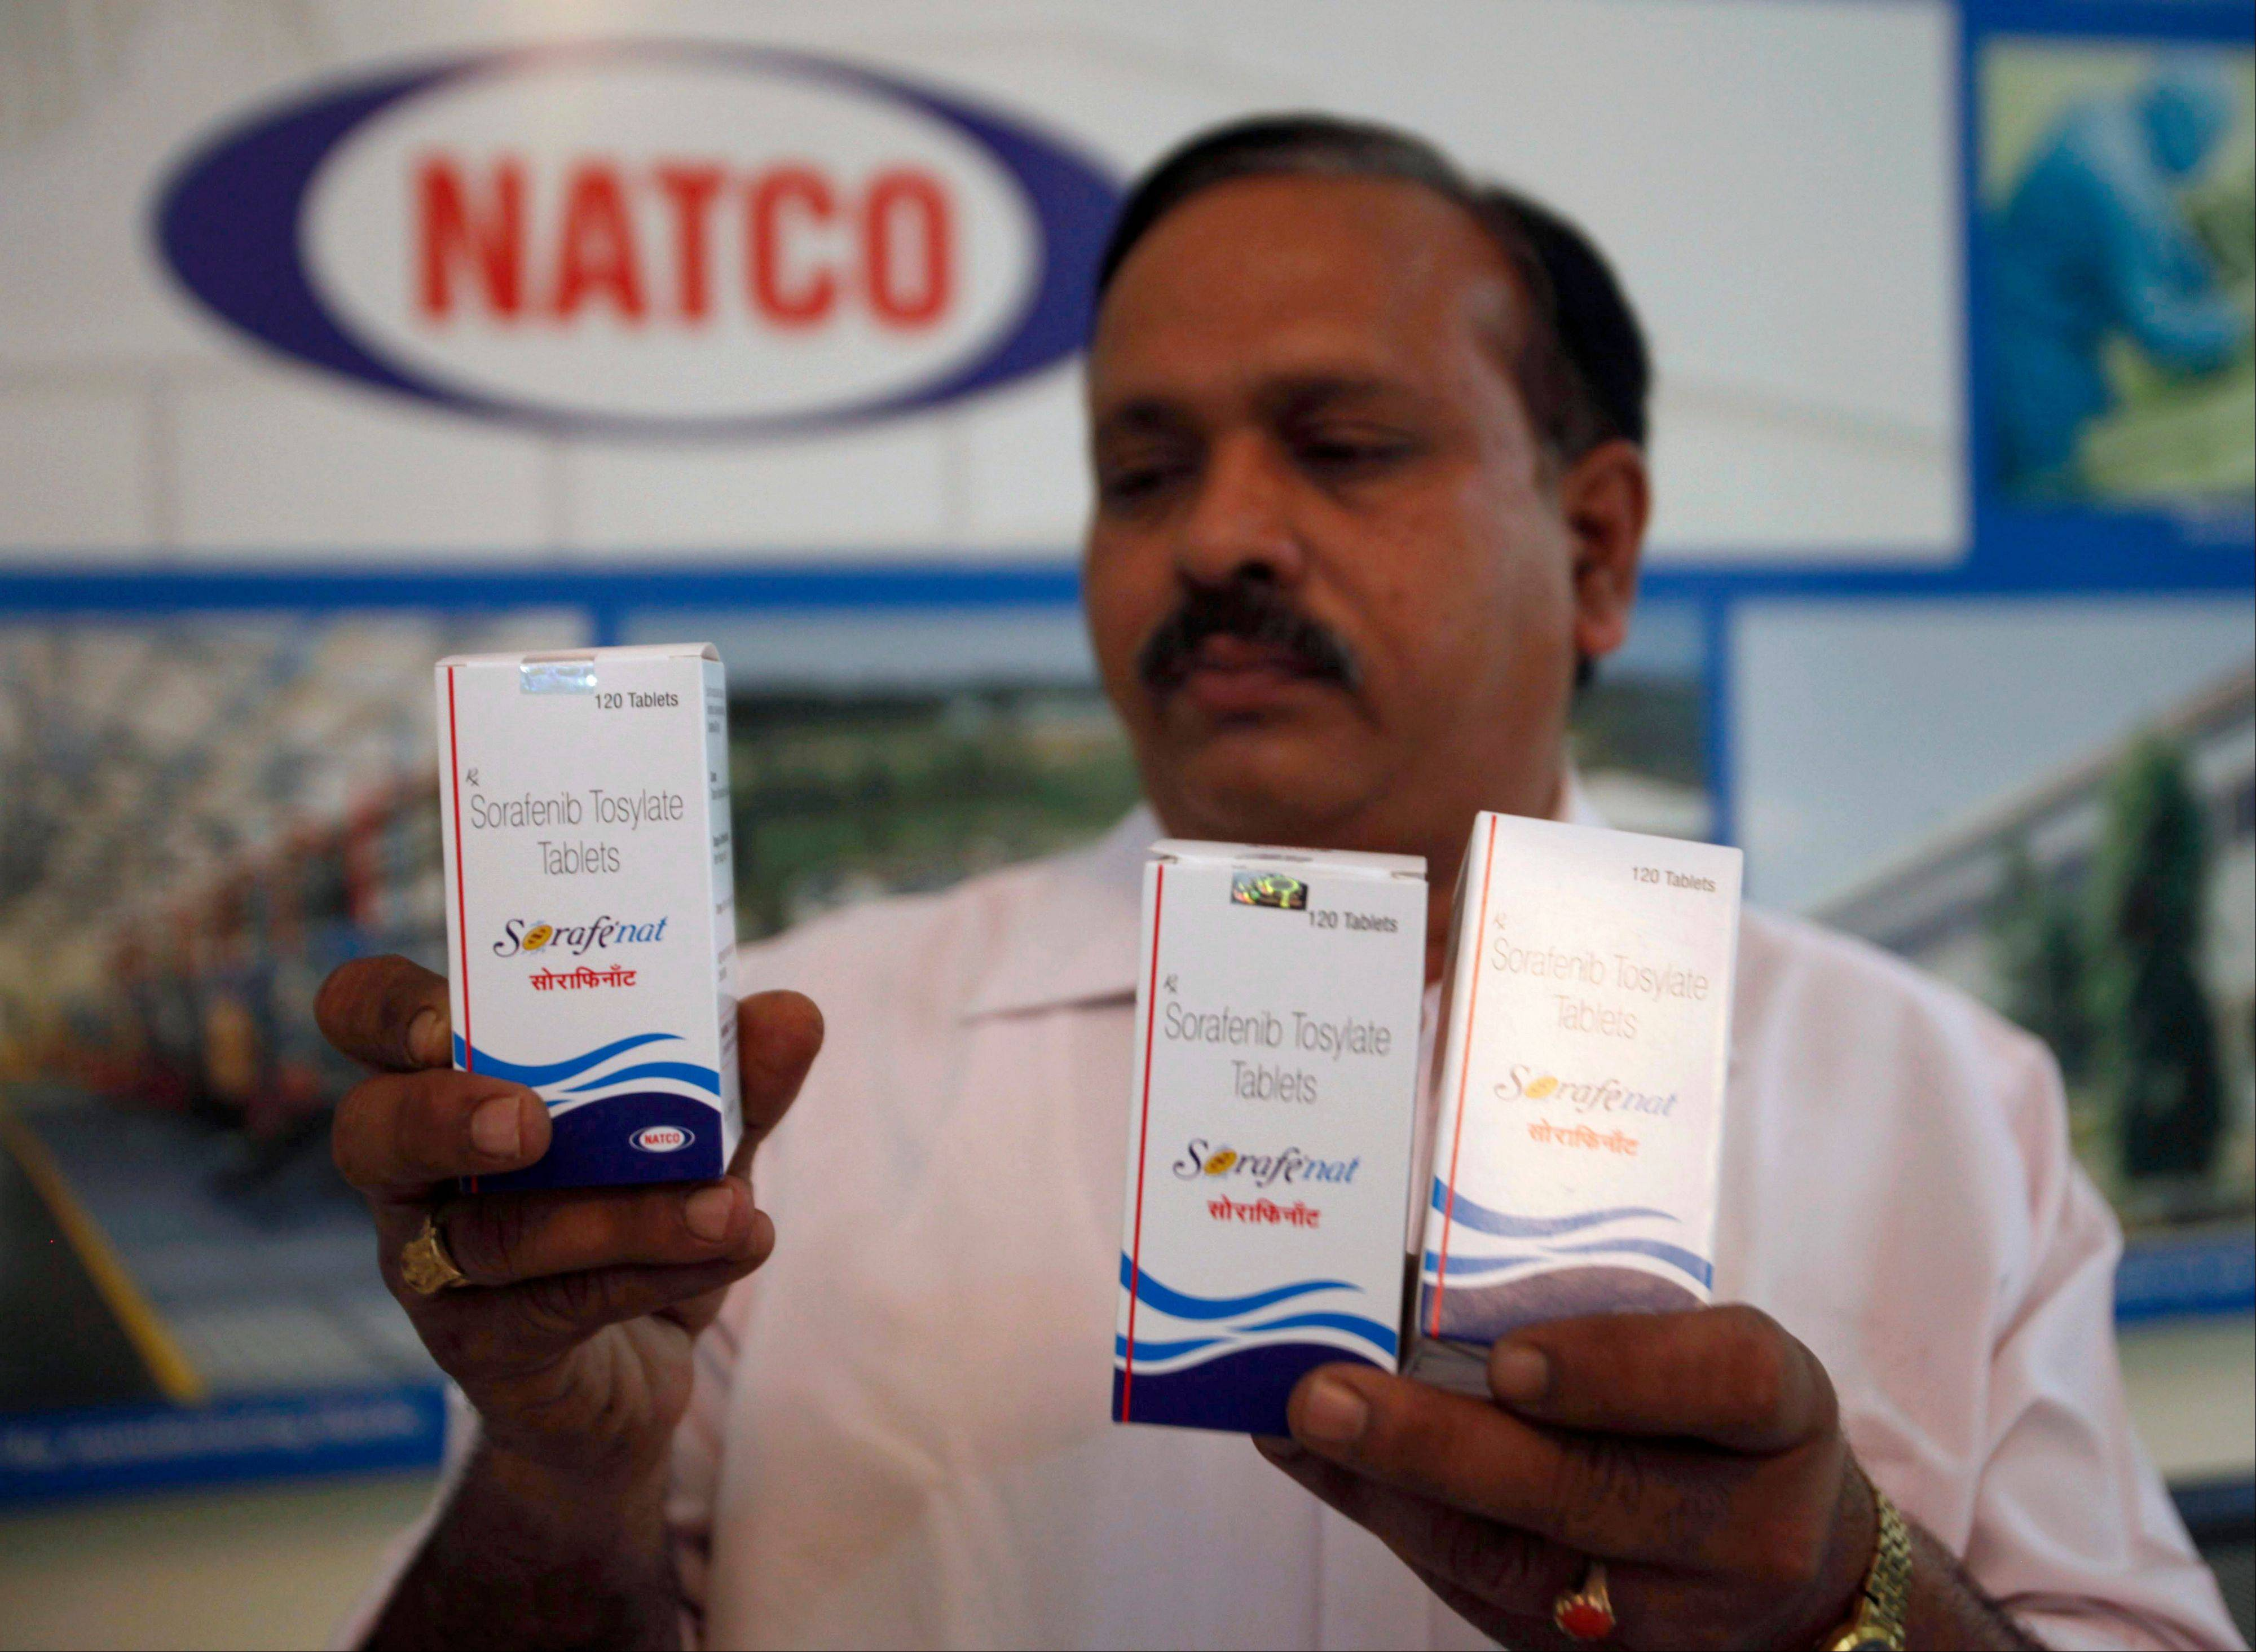 Natco Pharma Ltd. Secretary and General Manager Legal and Corp. Affairs M. Adinarayana displays Sorafenib Tosylate drugs meant for cancer treatment, at the company�s head office in Hyderabad, India. India's patent appeals office.